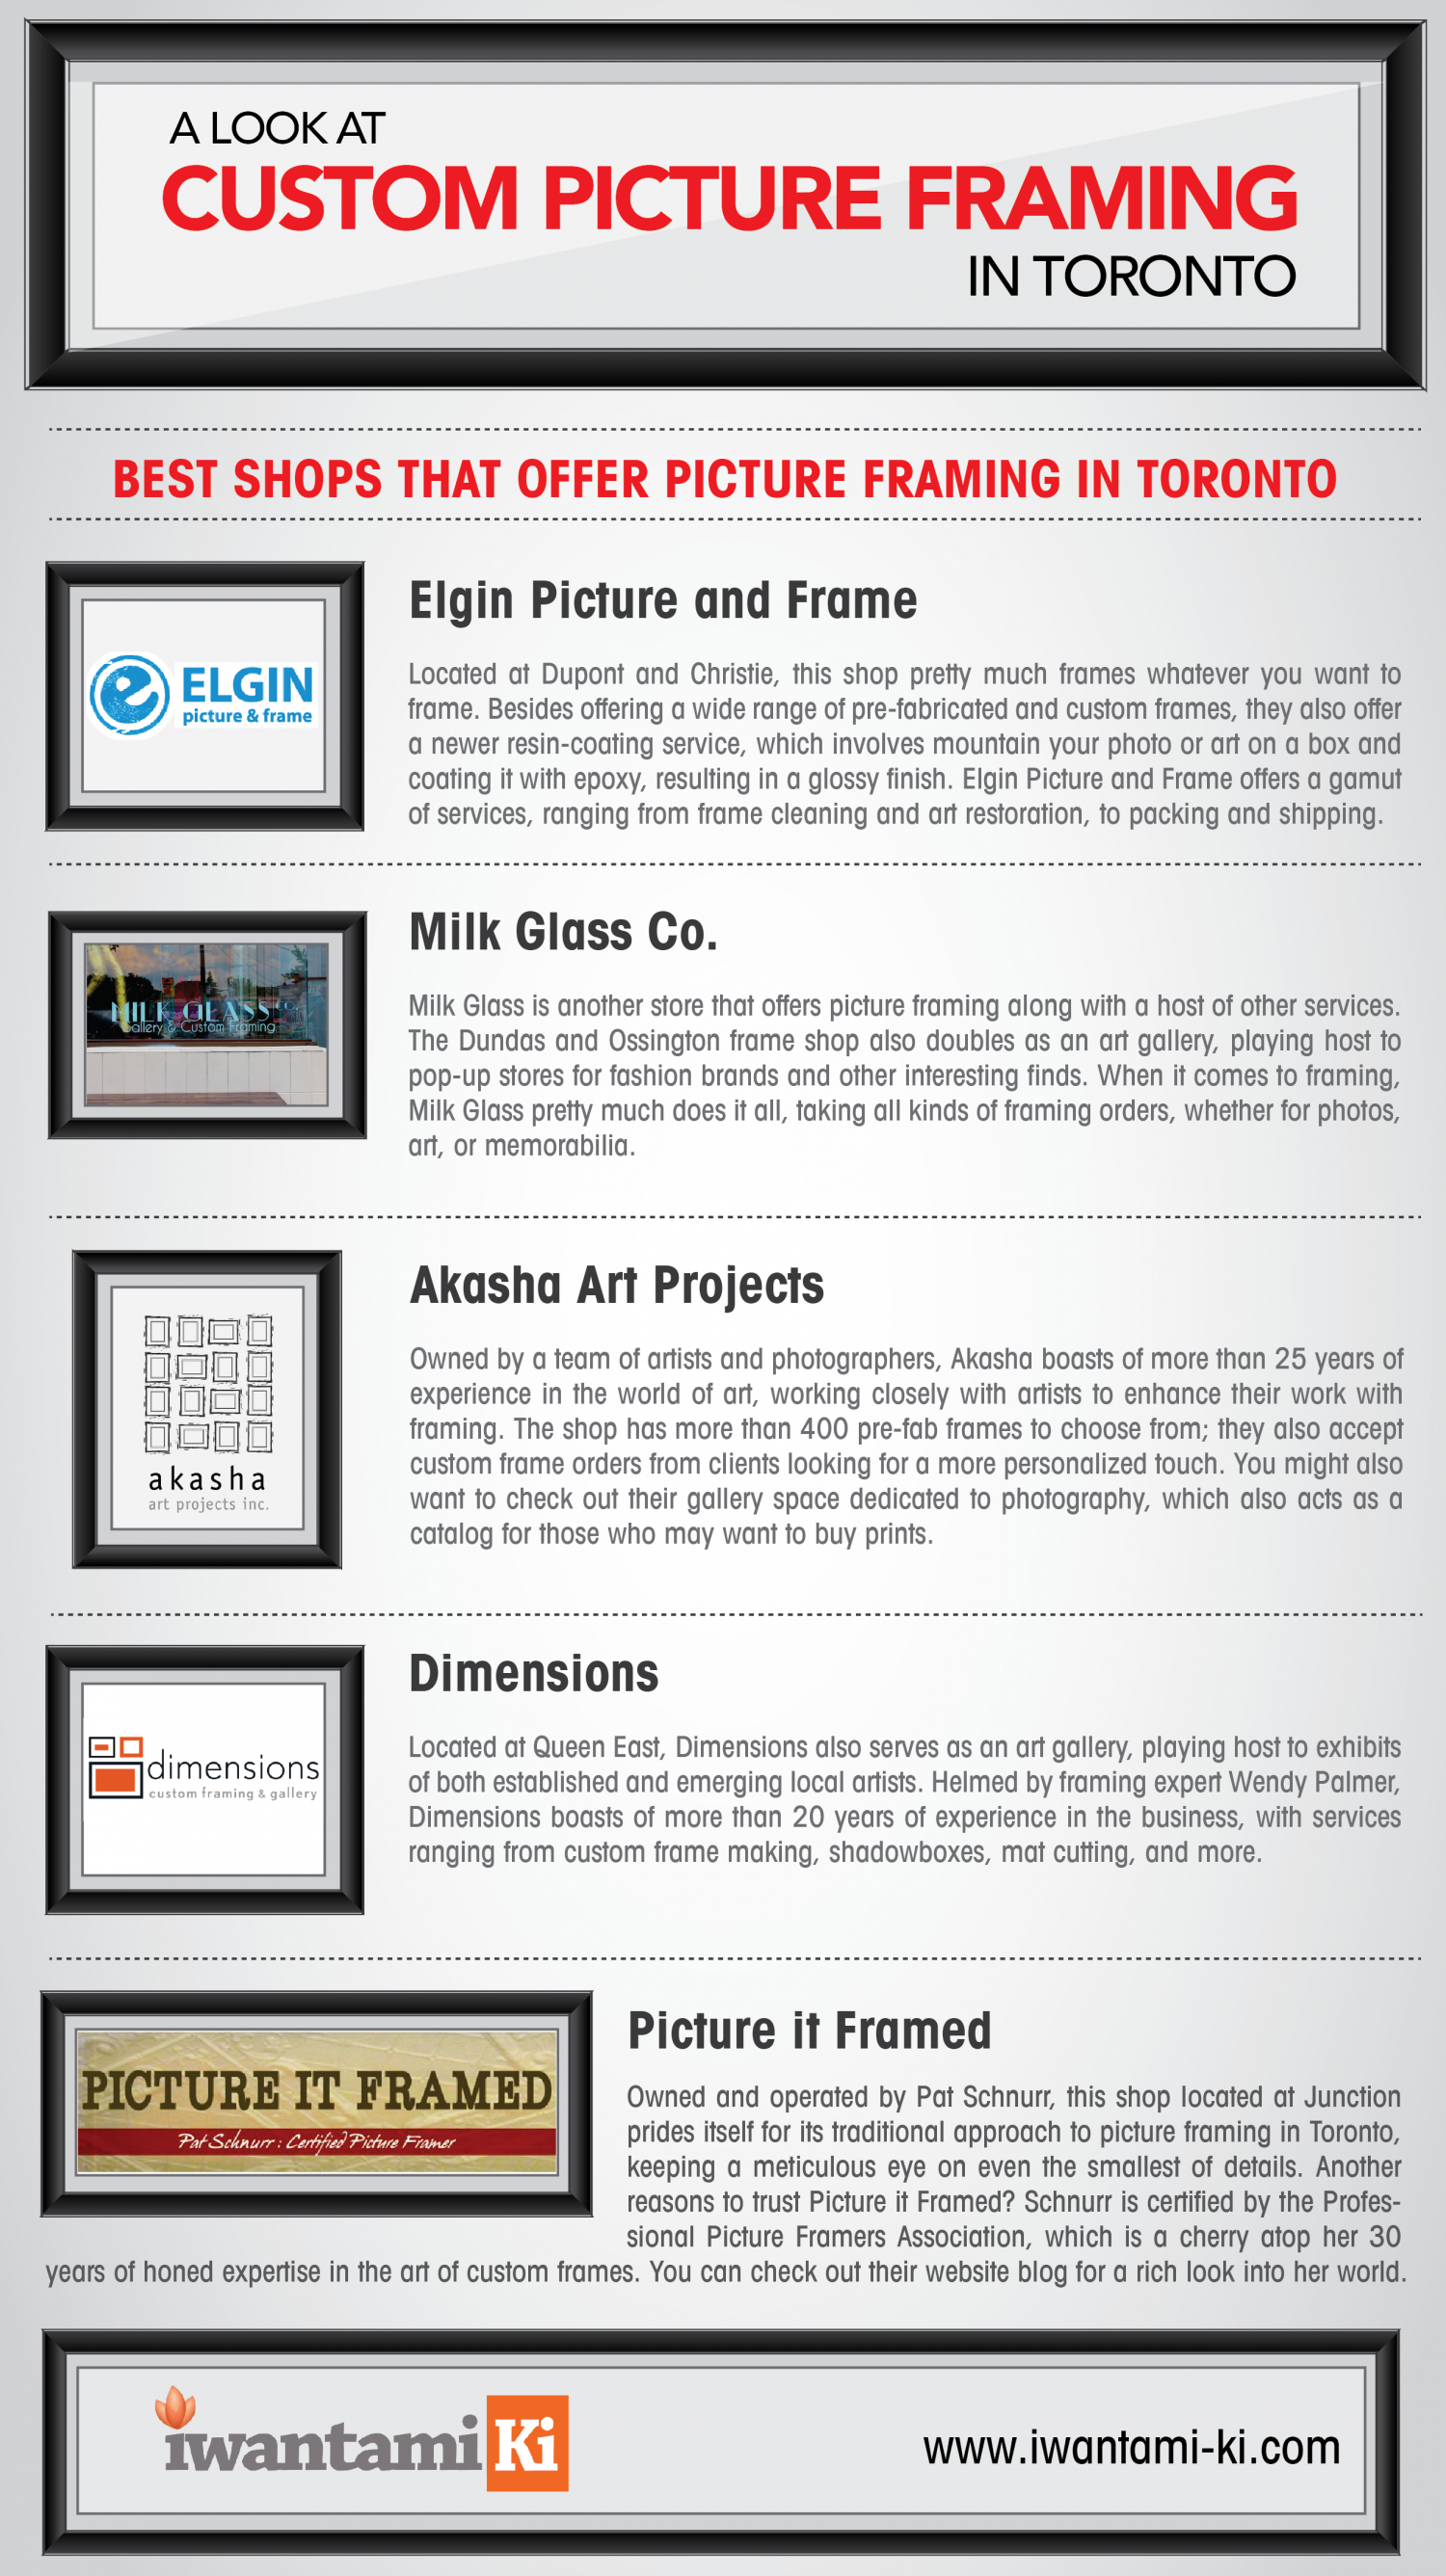 A look at custom picture framing in toronto visual a look at custom picture framing in toronto infographic jeuxipadfo Image collections